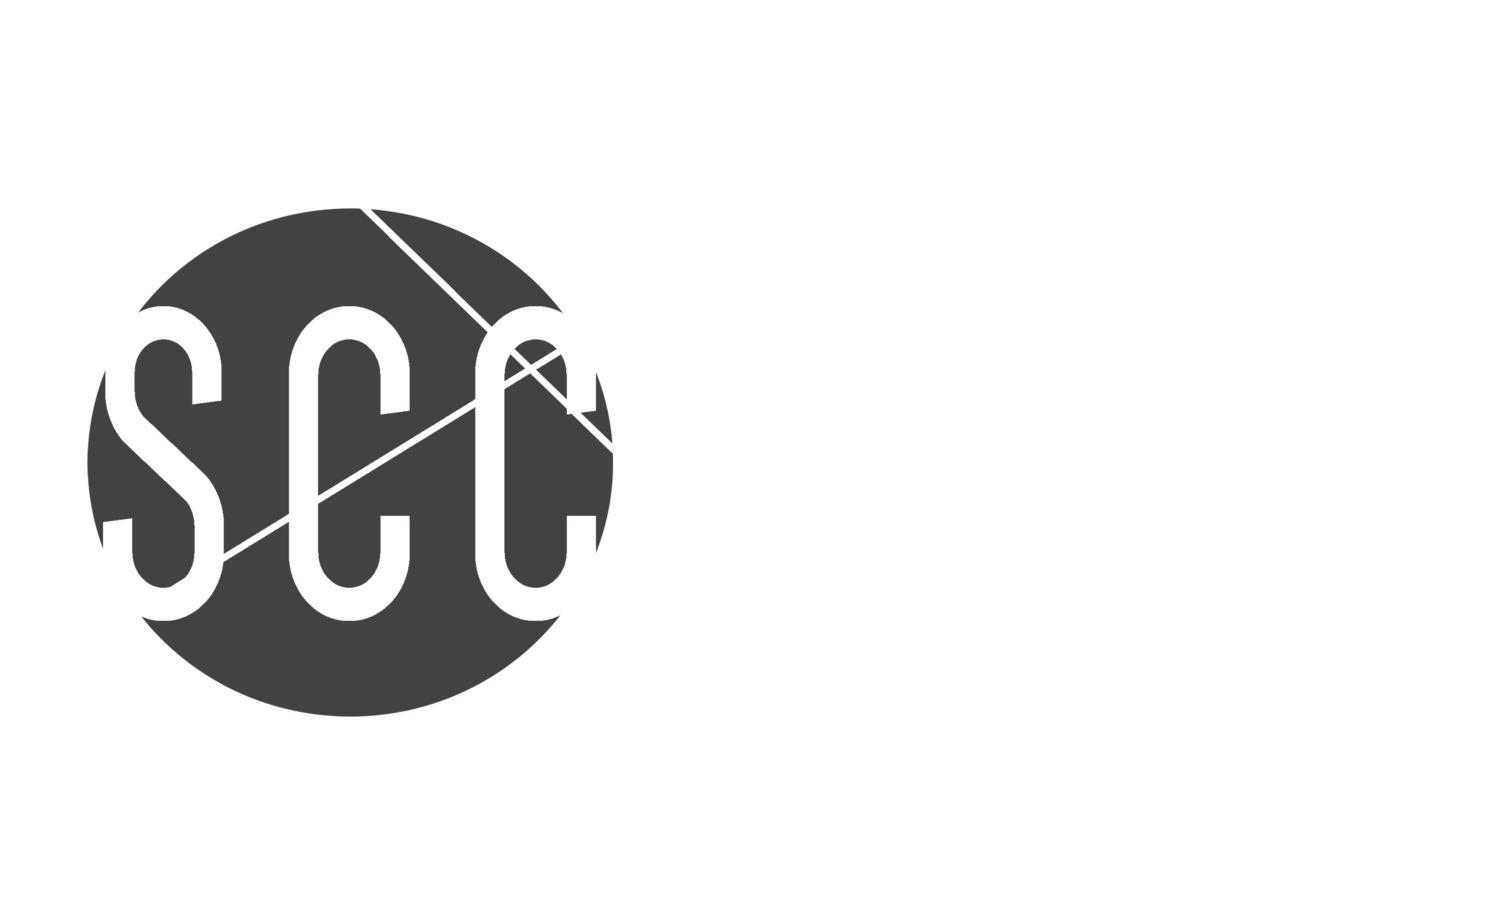 Summerville Church of Christ